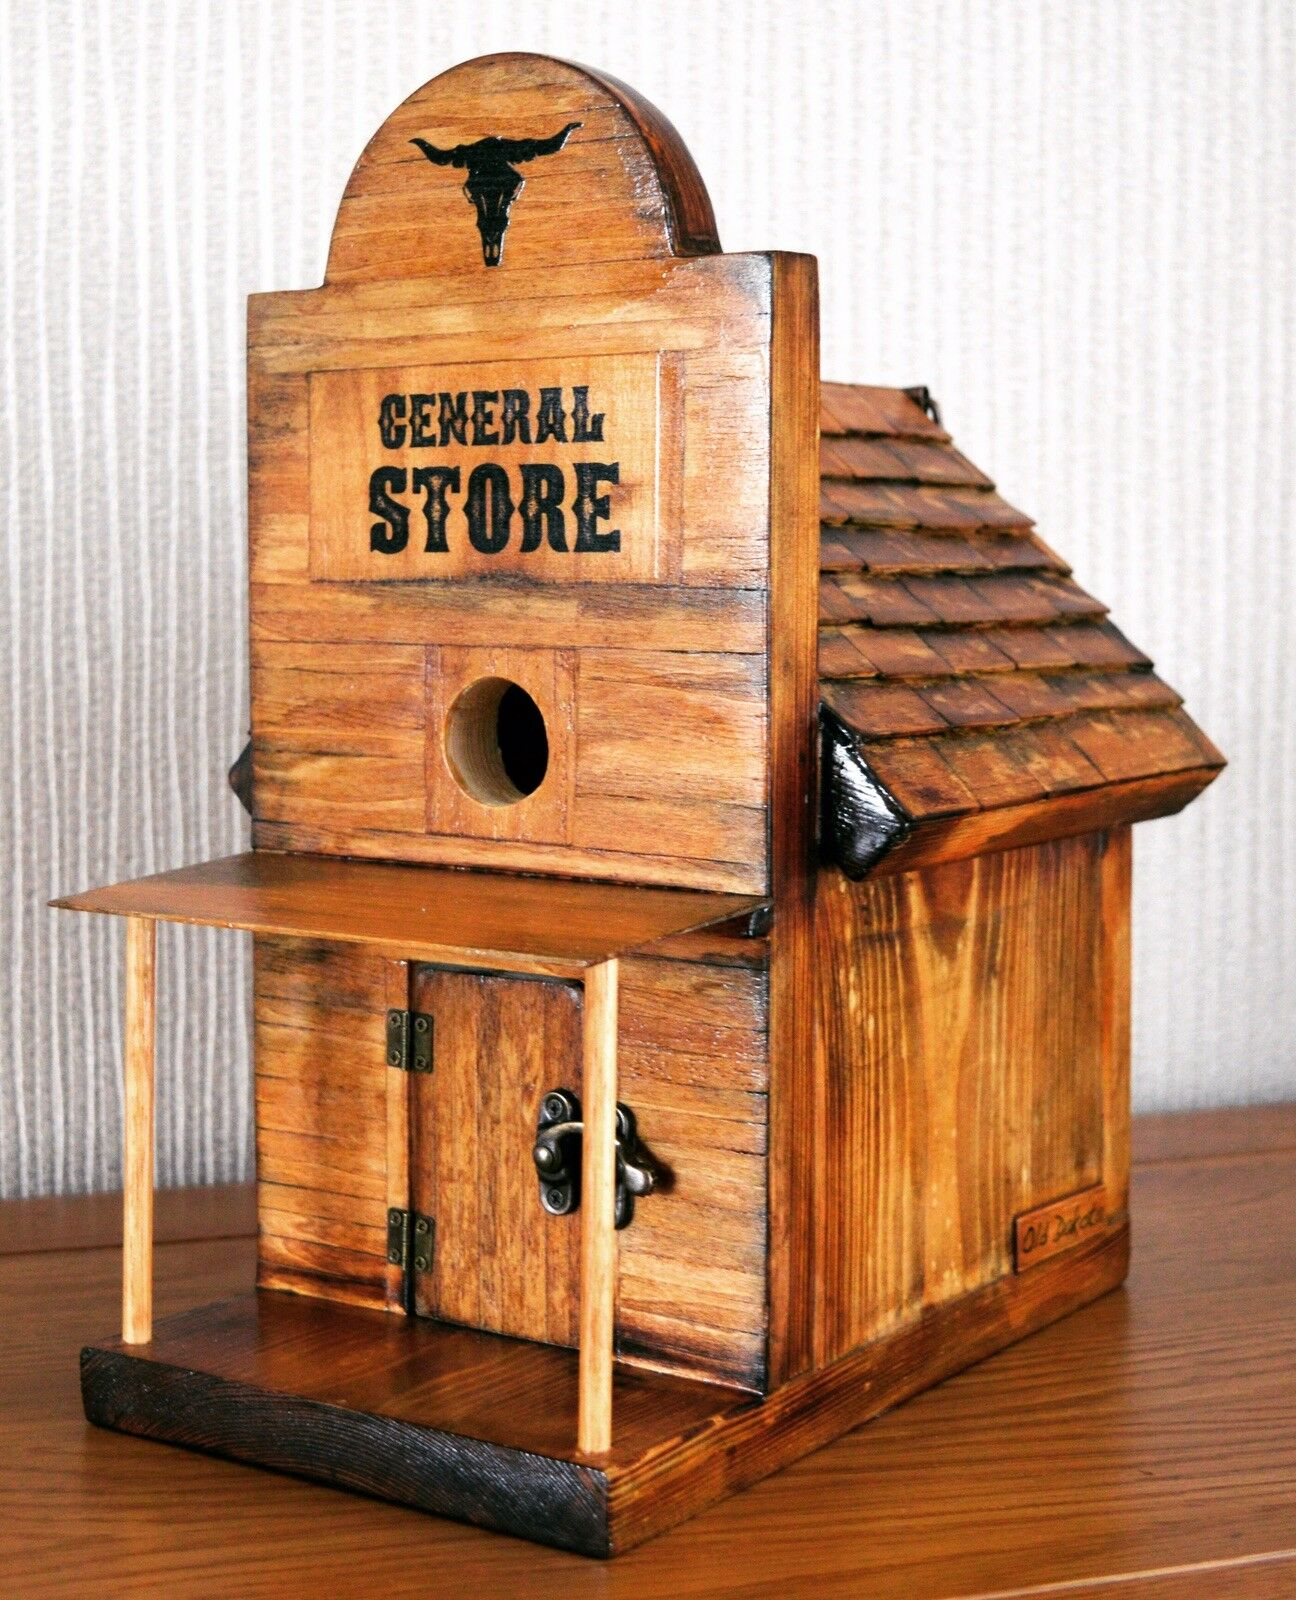 Western Style Americana Birdhouse By Old Dakota. General Store. American Lime 5